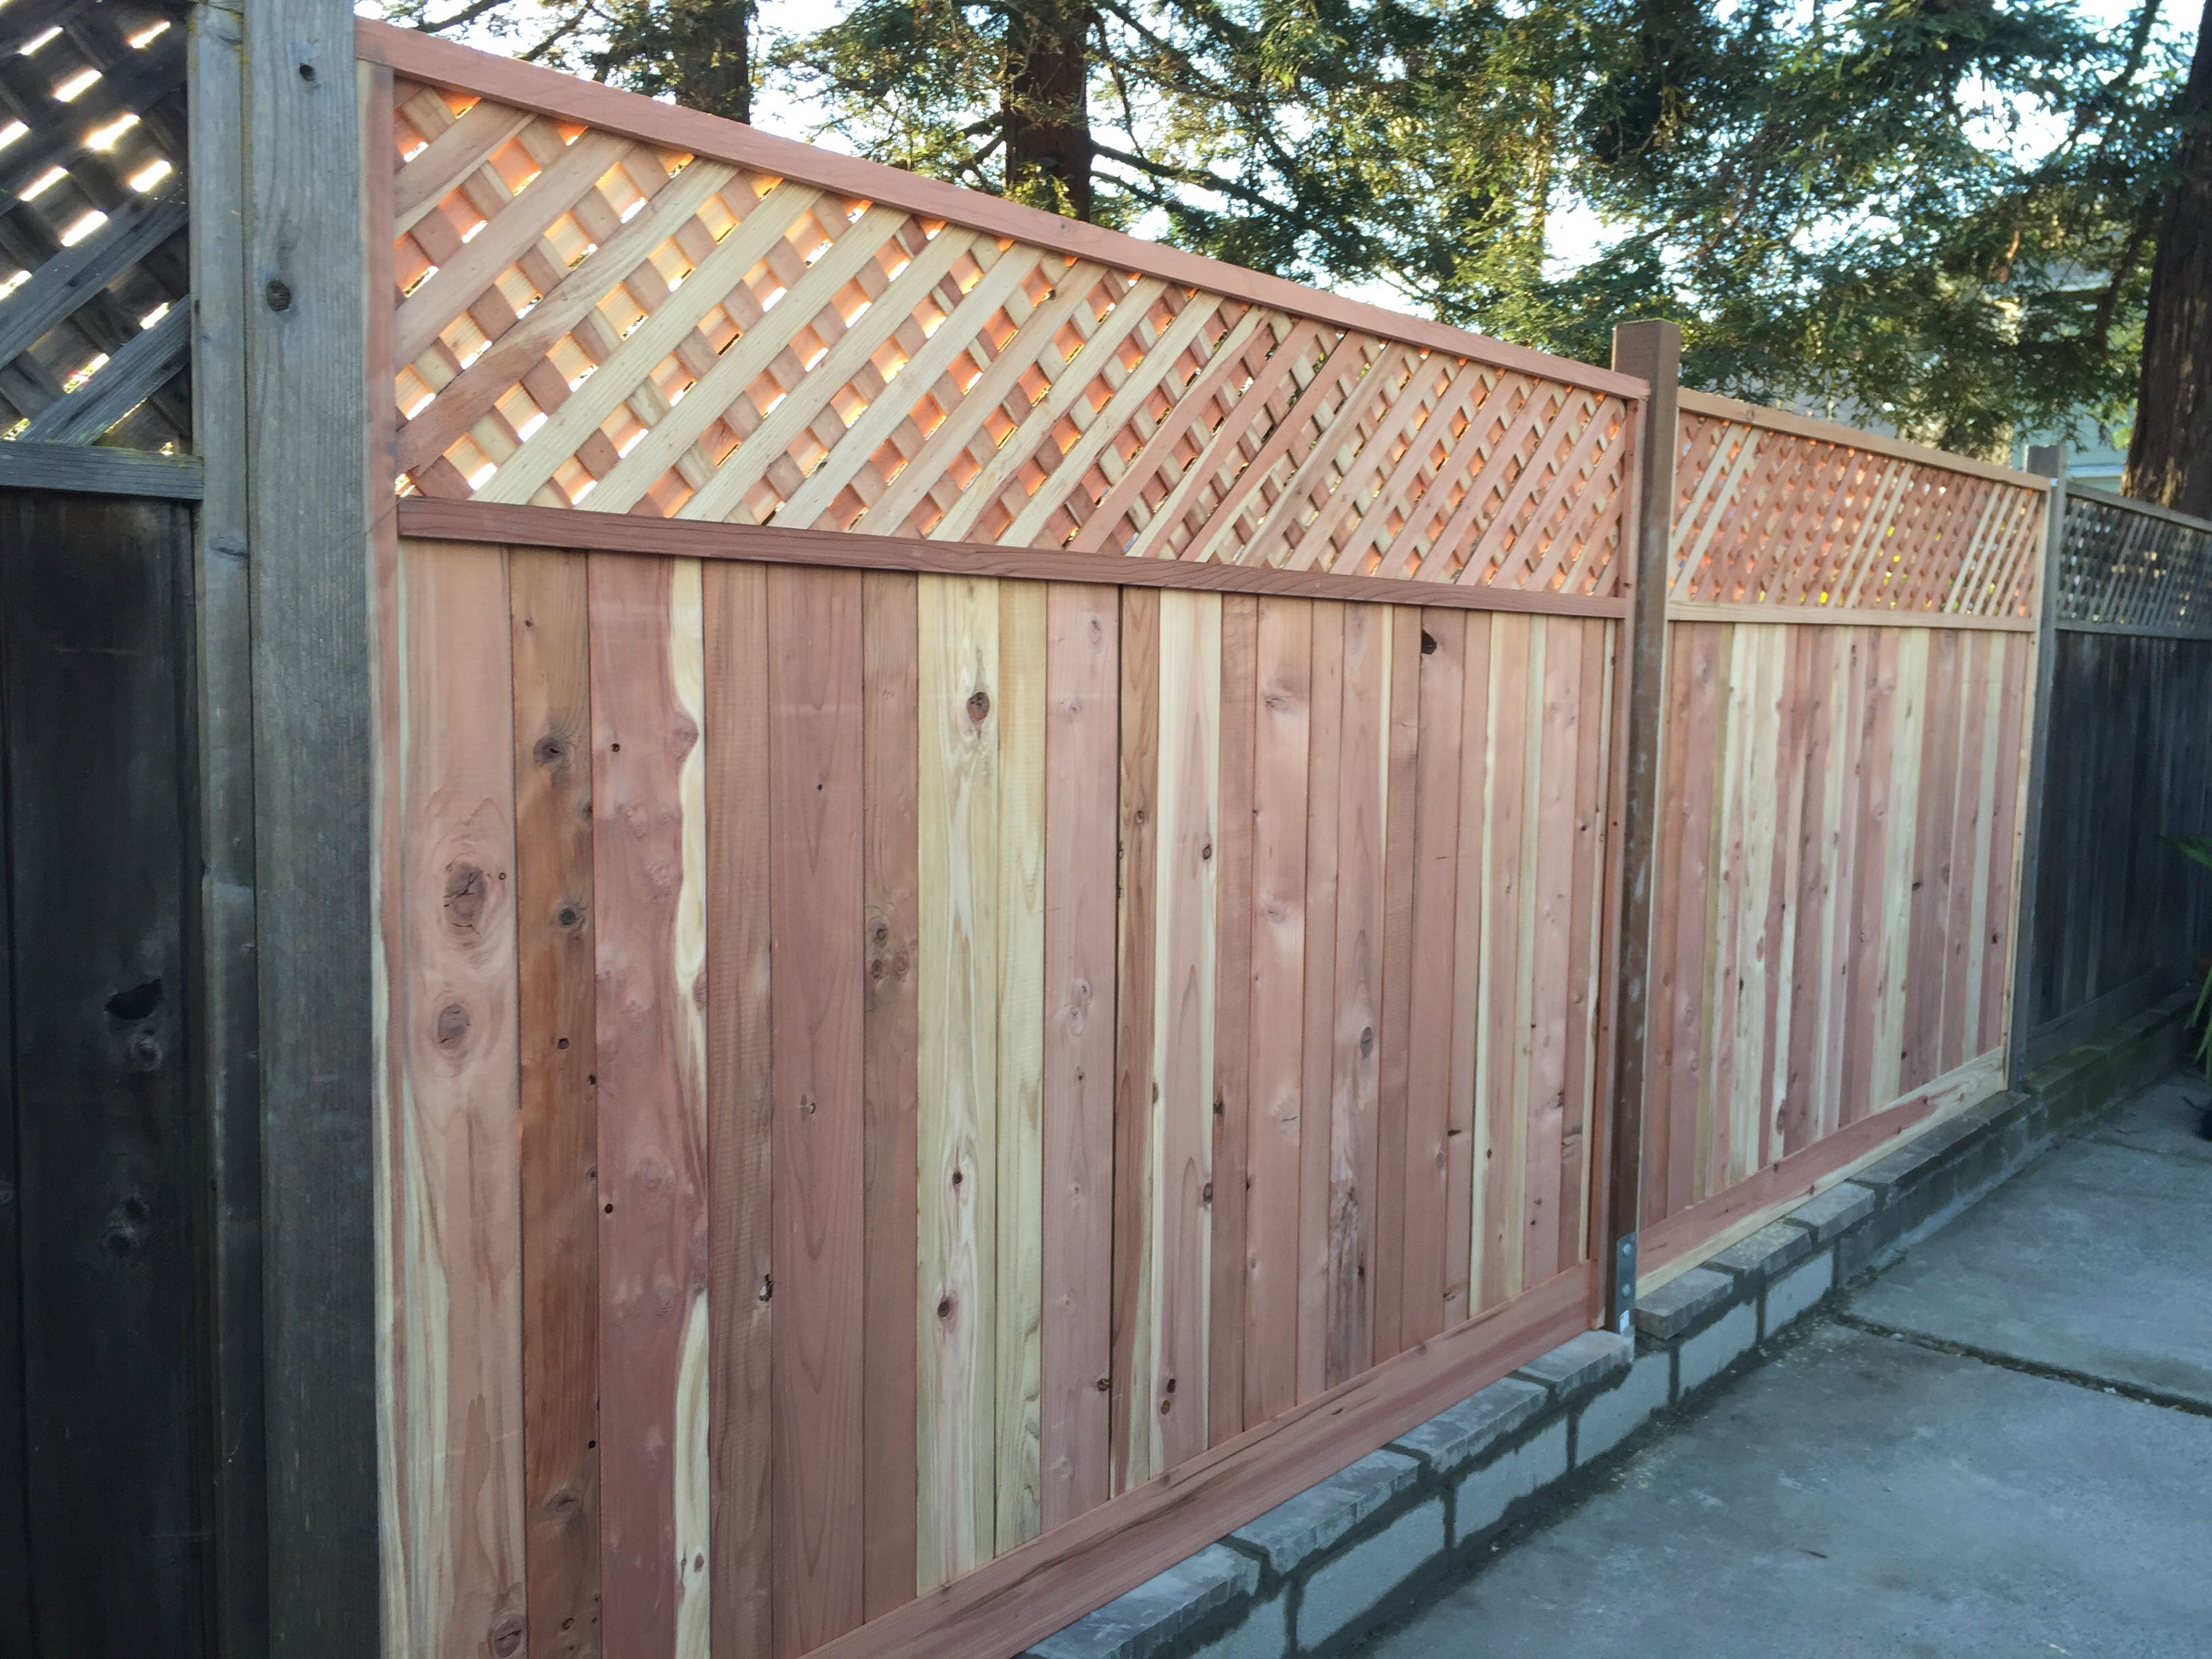 alameda-ca-picture-frame-board-on-board-with-1-diagonal-privacy-lattice-on-reinforced-concrete-block-retaining-wall